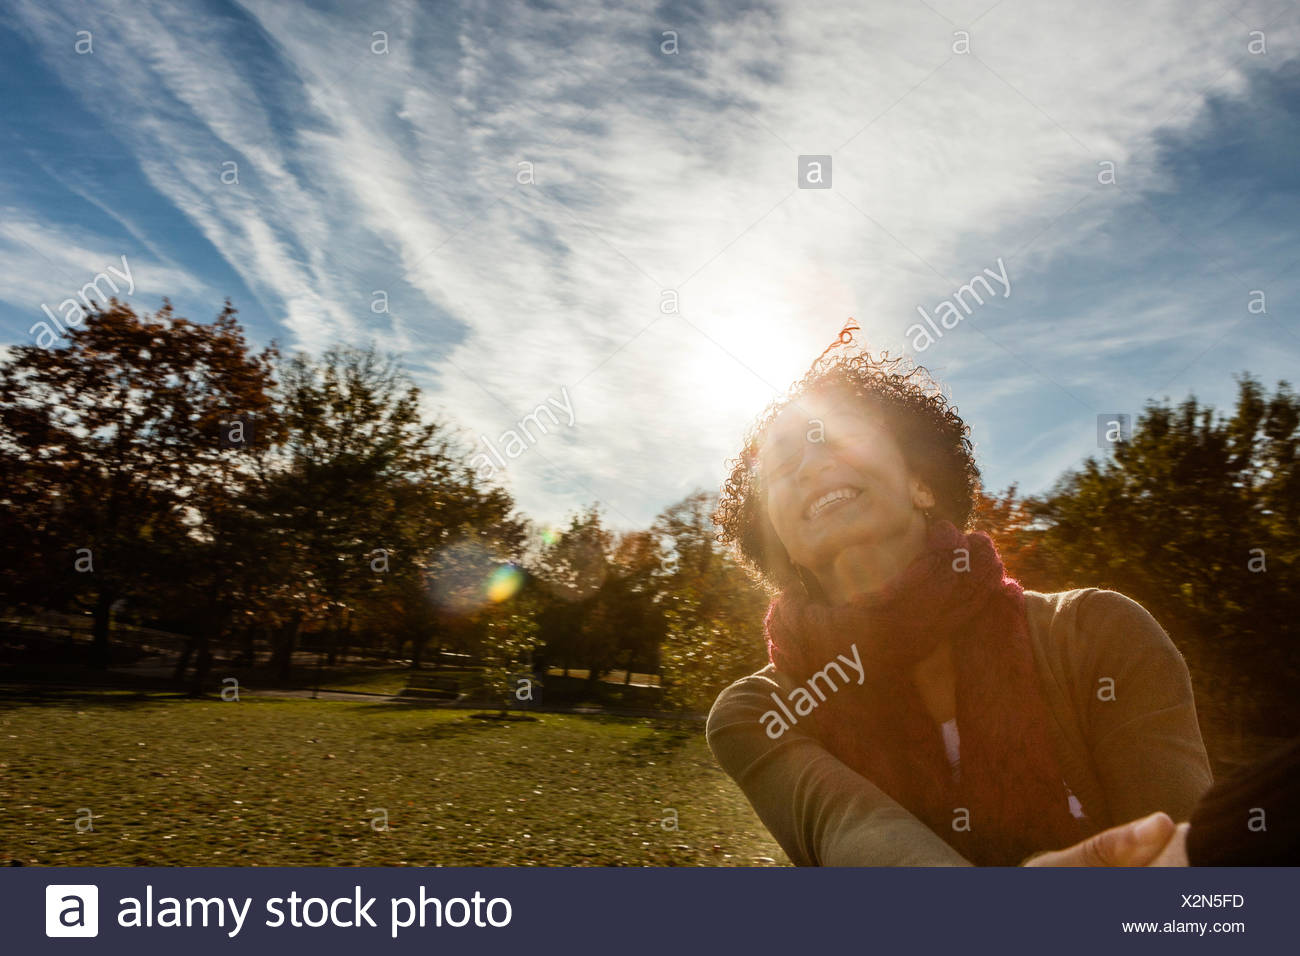 Young woman in park on autumn day Stock Photo